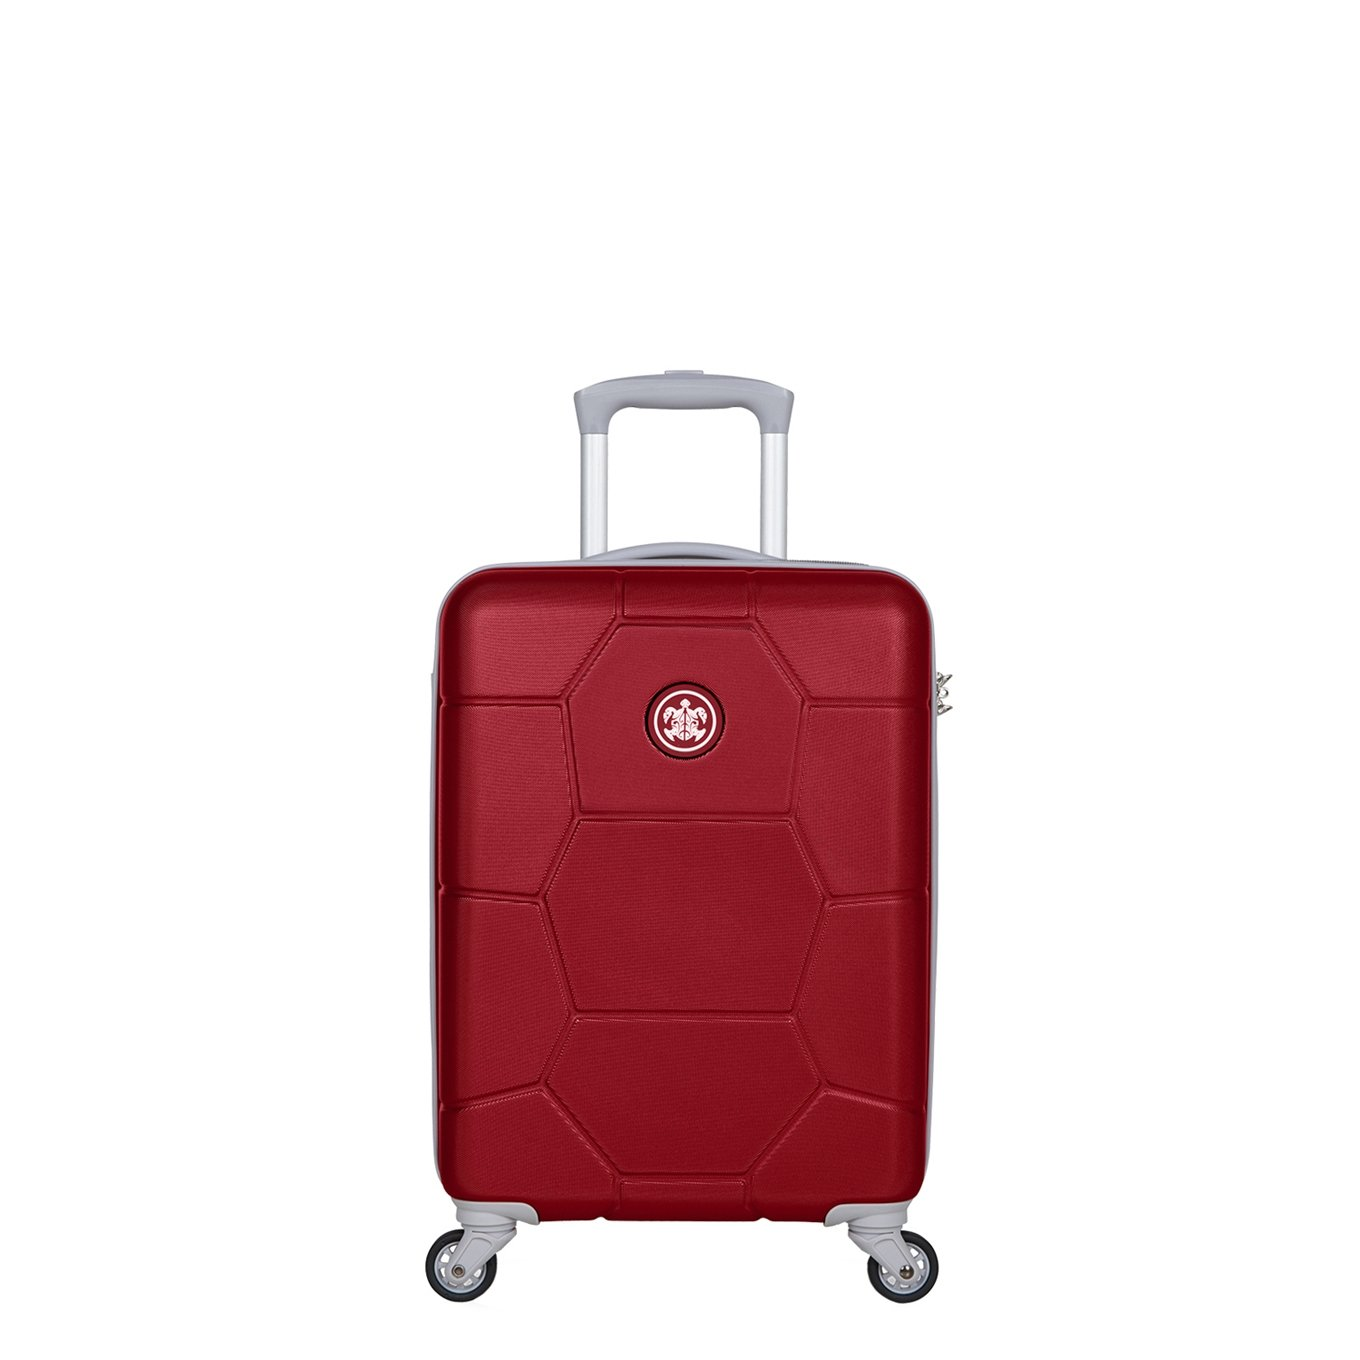 SuitSuit Caretta Trolley 53 red cherry Harde Koffer <br/></noscript><img class=